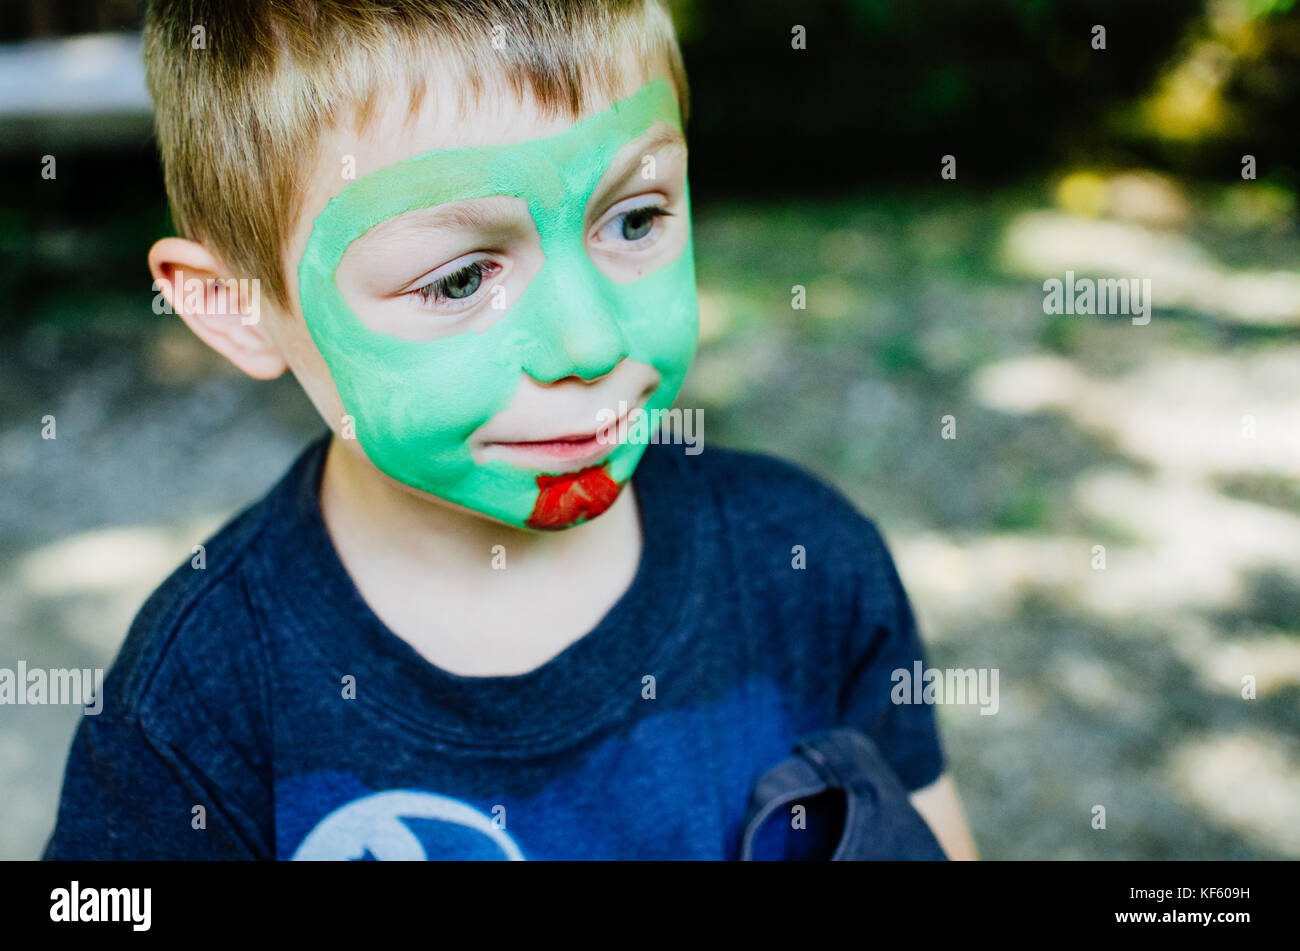 A boy with green face paint being painted - Stock Image